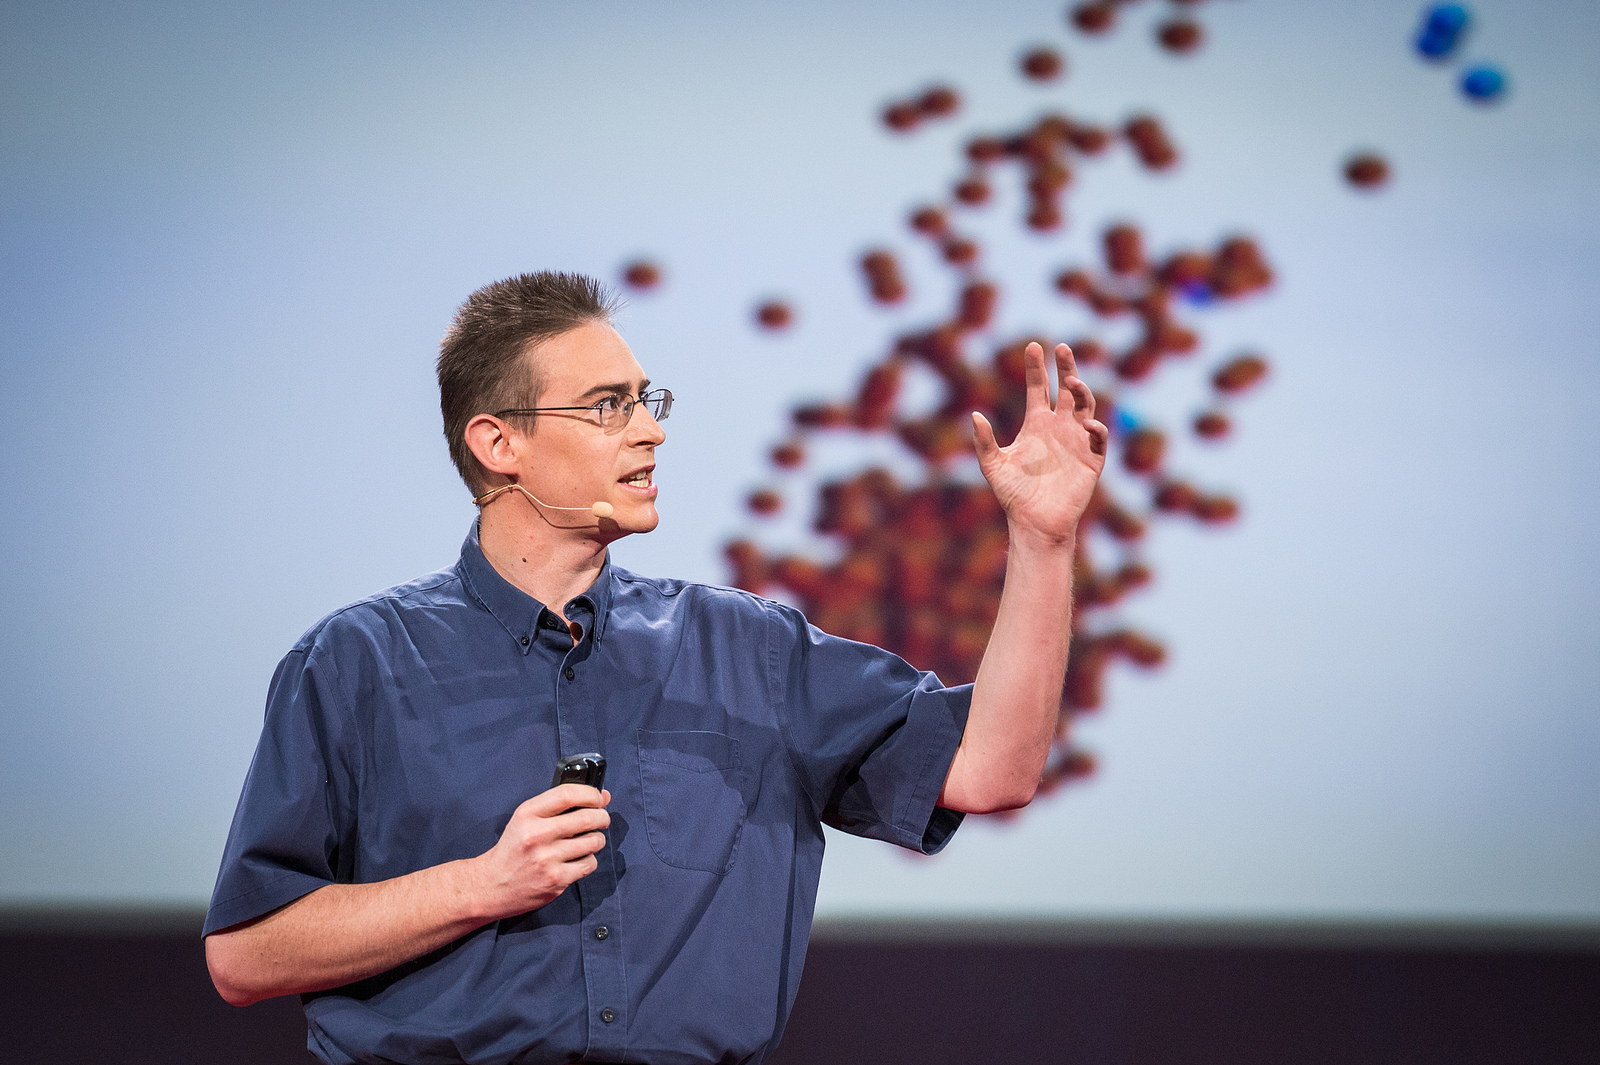 Rob Knight introduced us to the American Gut Project at TED2014. This week, they released some fascinating findings. Photo: James Duncan Davidson